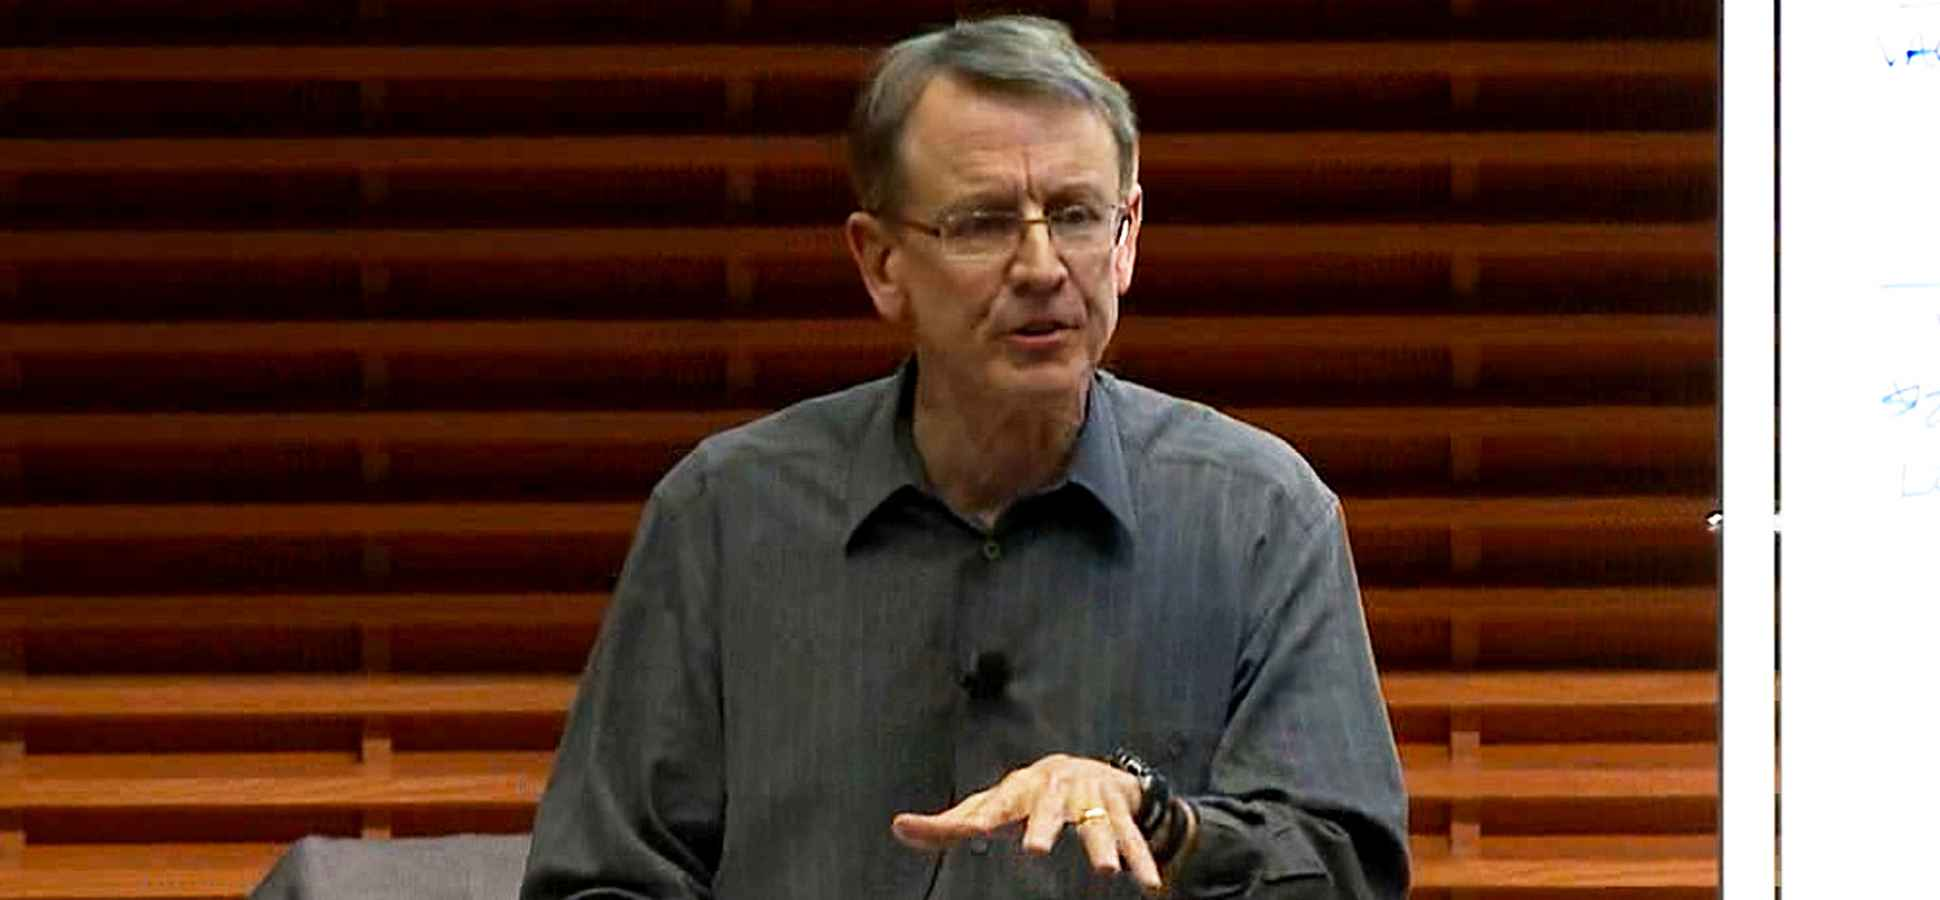 John Doerr: How to Be a Great Entrepreneur